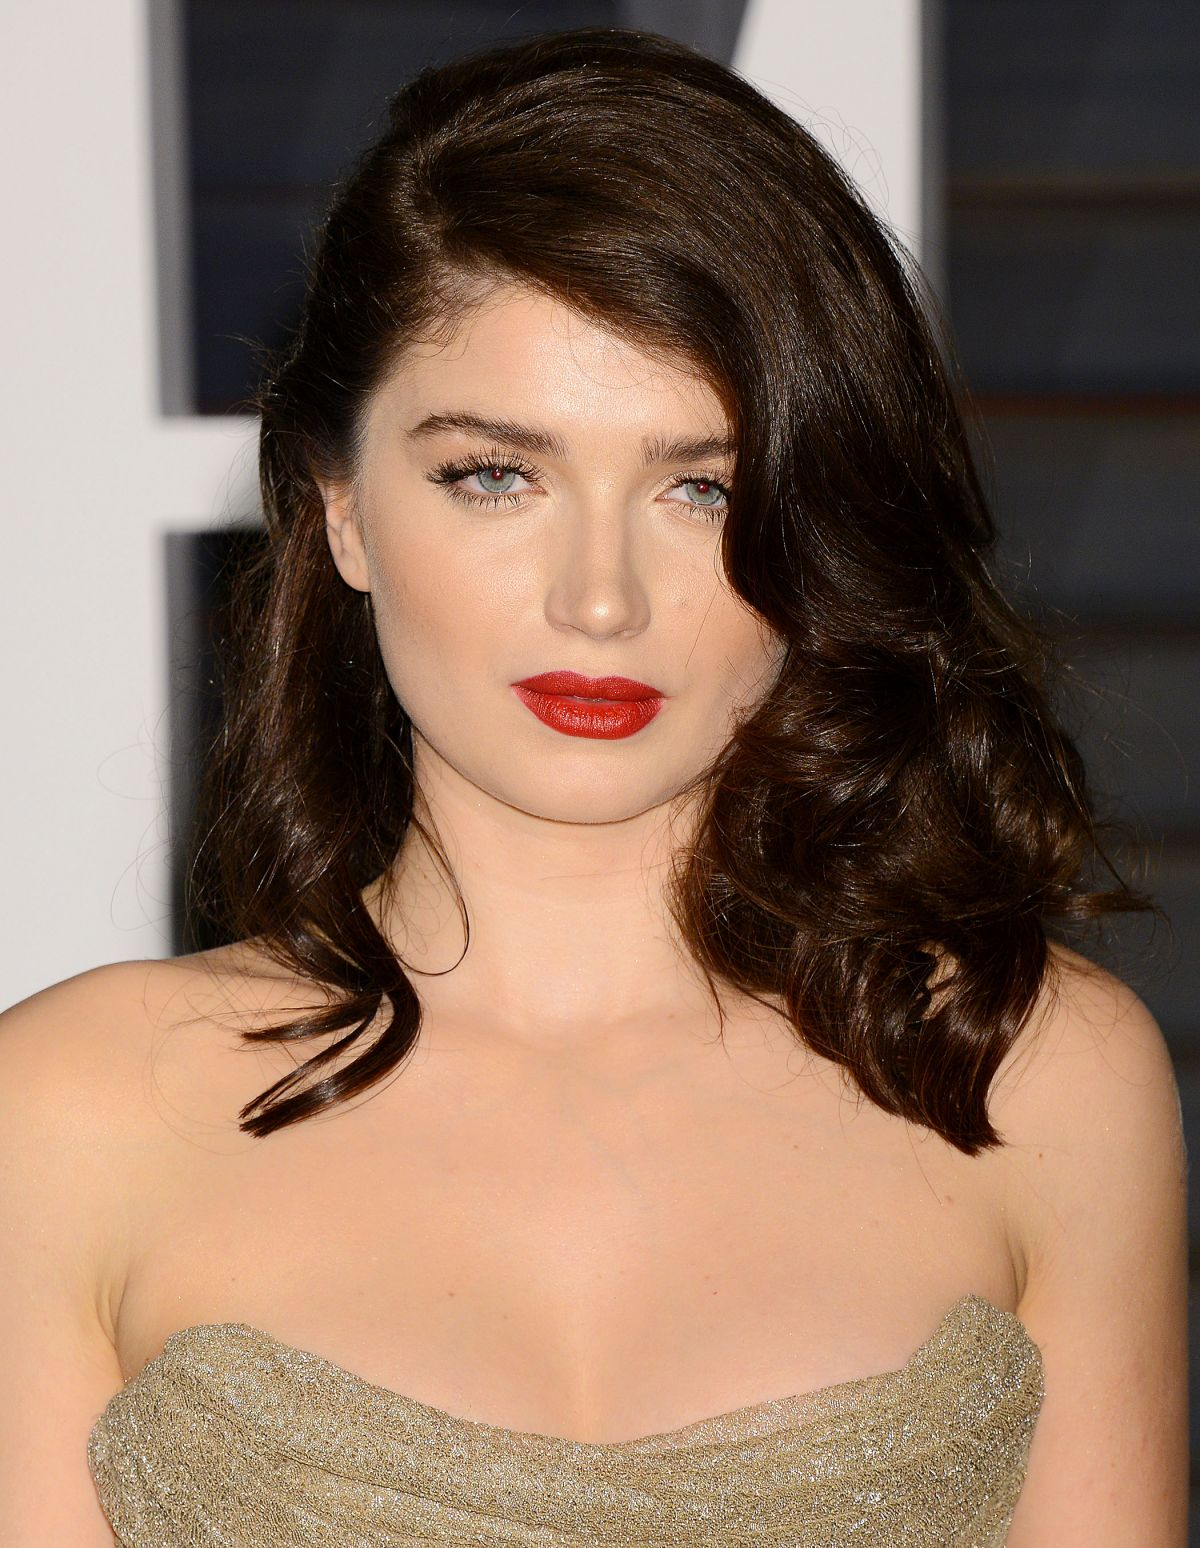 EVE HEWSON at Vanity Fair Oscar Party in HollywoodEve Hewson